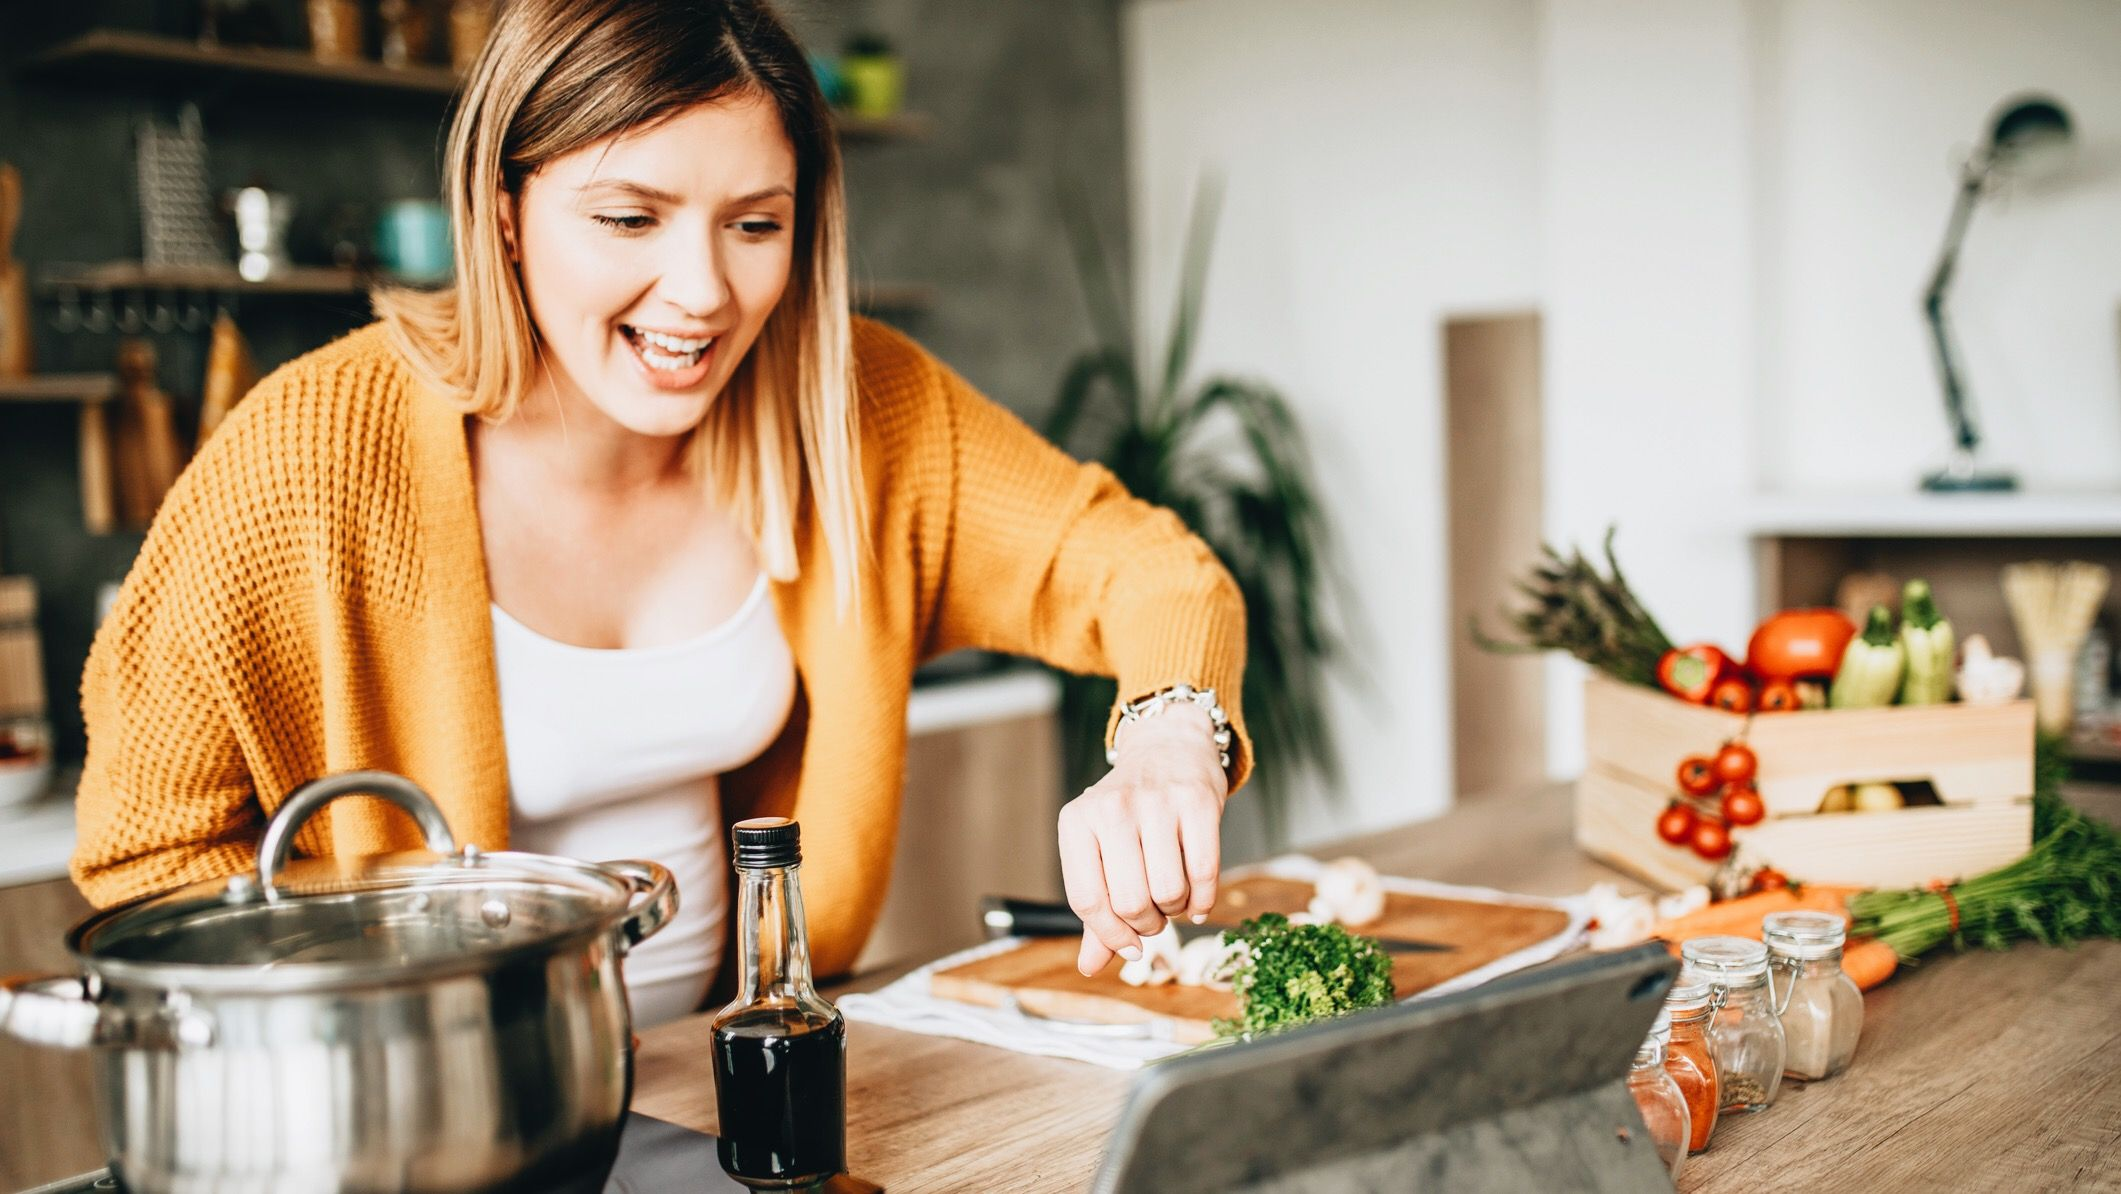 7 Surprising Ways Cooking Can Boost Your Mental Health